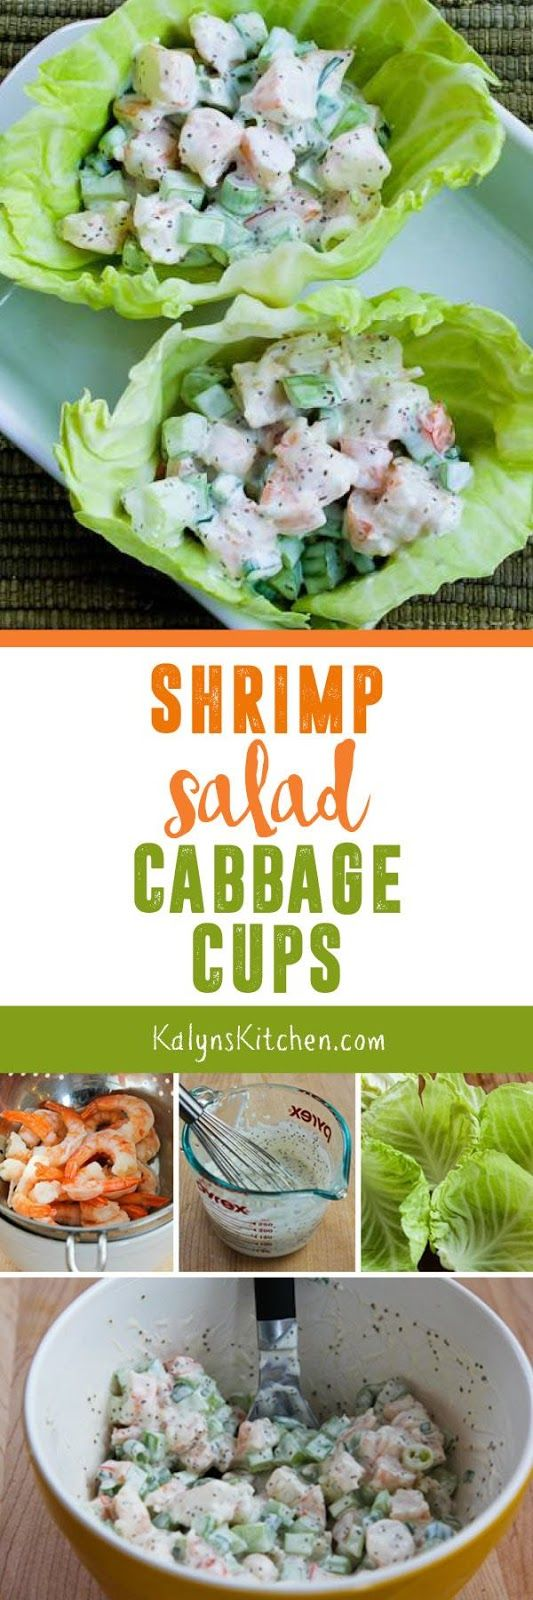 These tasty Shrimp Salad Cabbage Cups are a treat for lunch or game-day eats, and this recipe is low-carb, keto, gluten-free, dairy-free, South Beach Diet friendly, and can even be Paleo with the right mayo. Use lettuce if you're not a cabbage fan.  [found on KalynsKitchen.com]